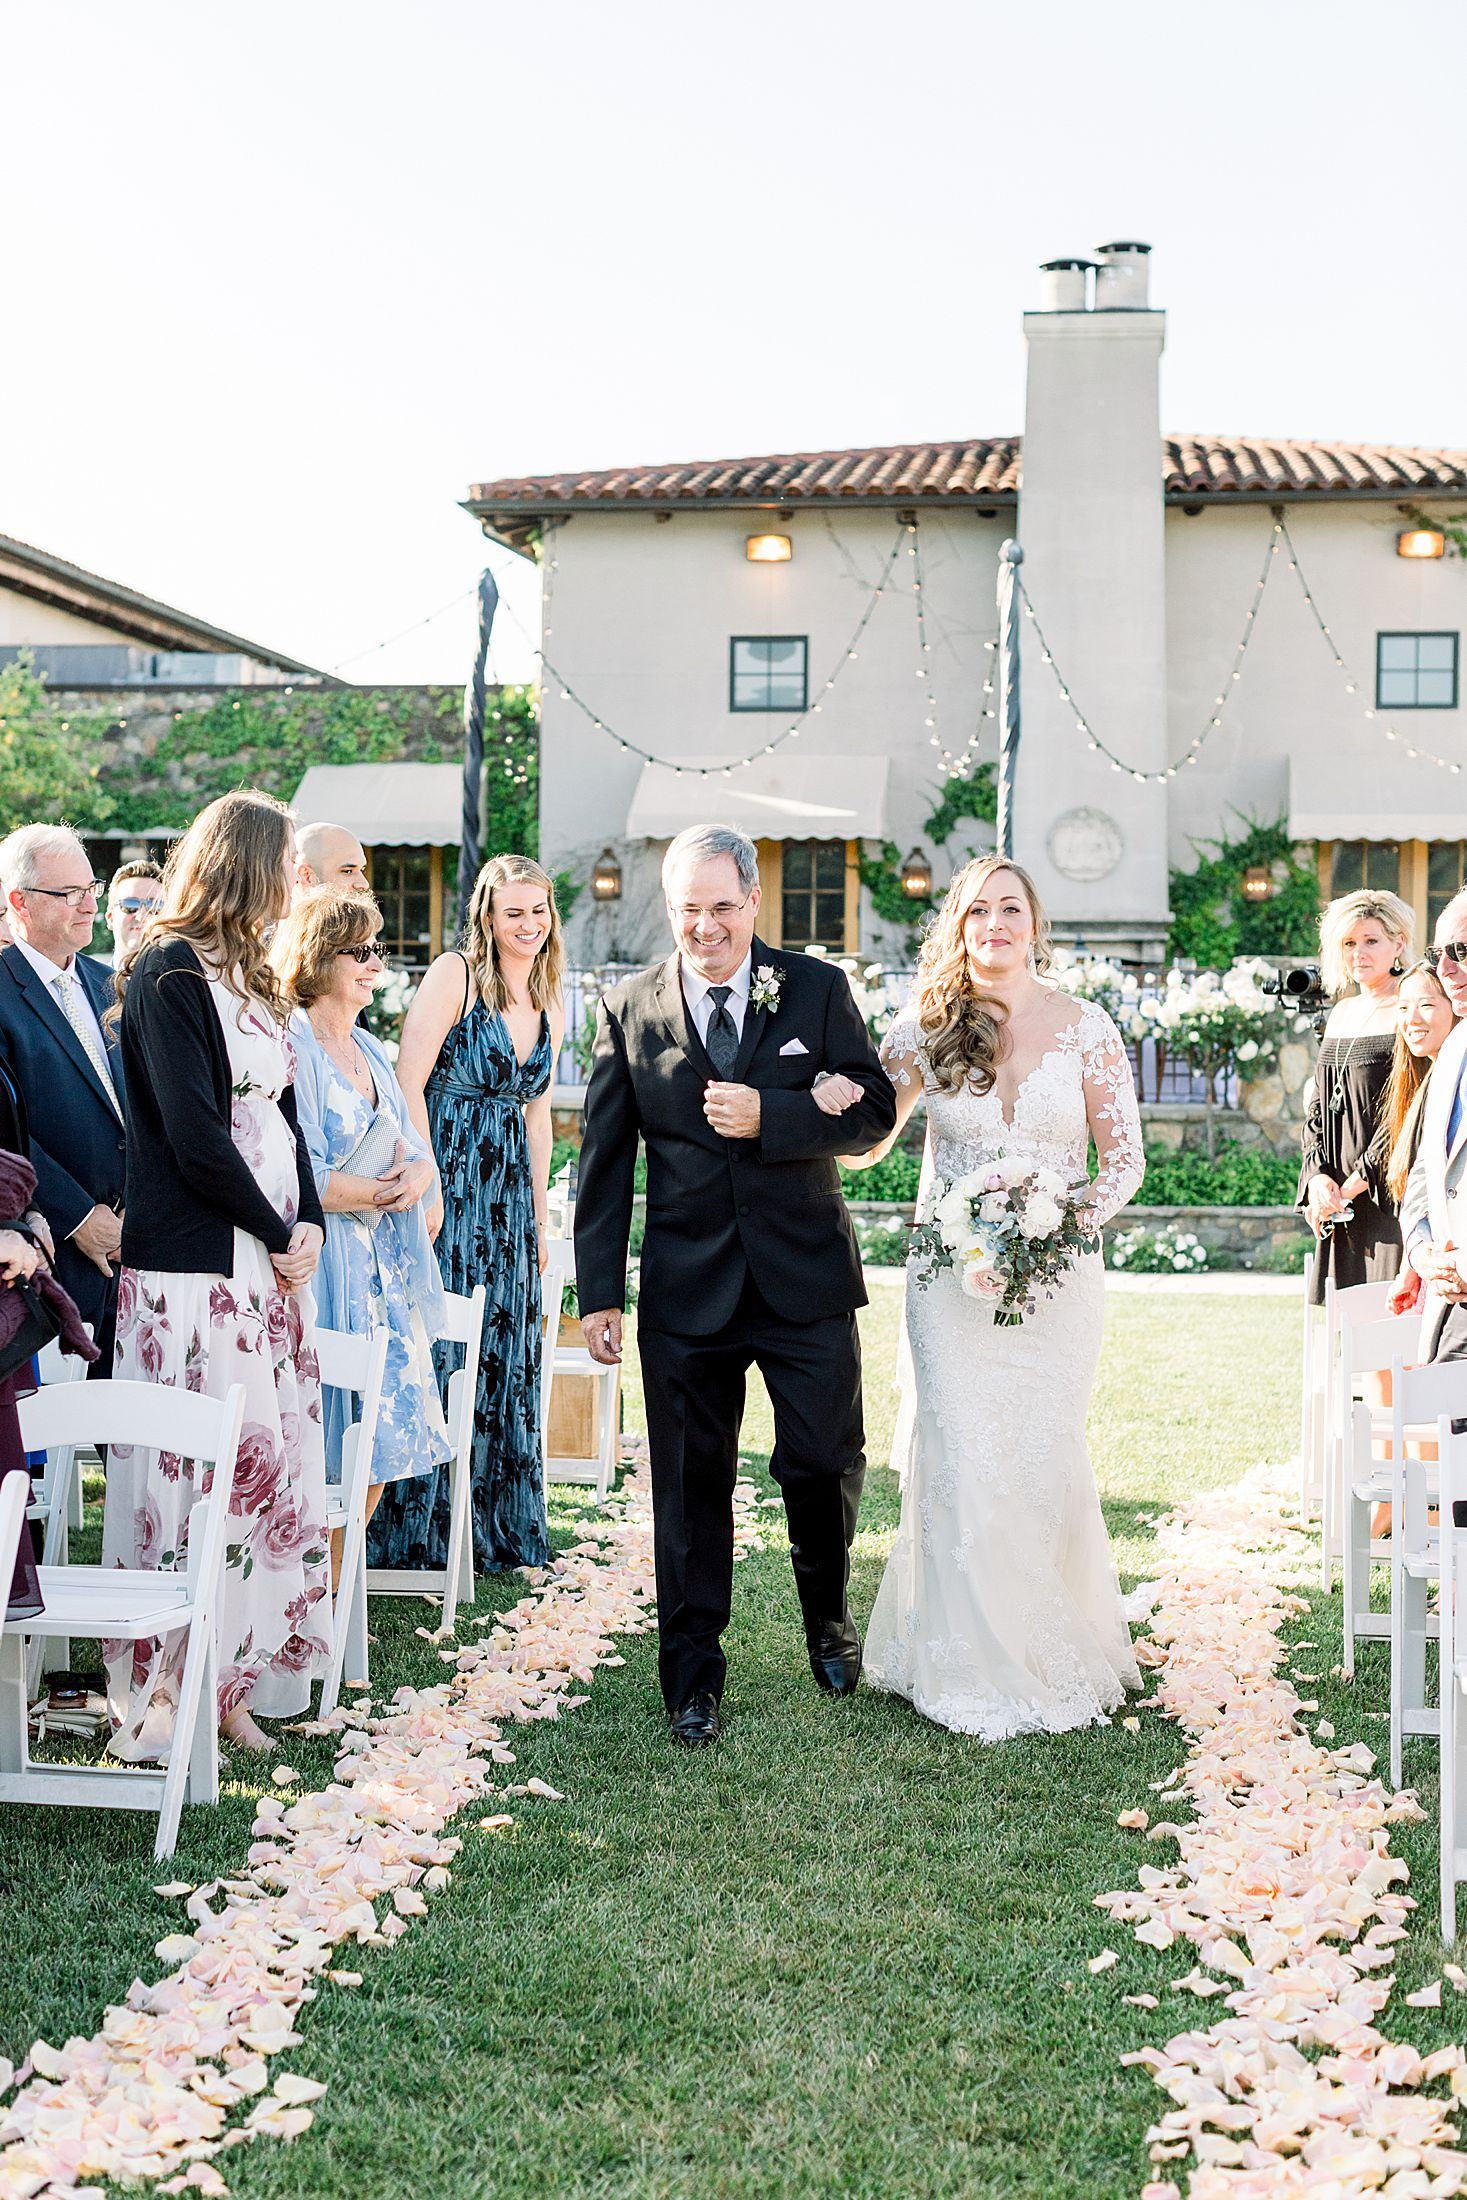 Clos LaChance Winery Wedding - Ashley Baumgartner - Kat & Kurt - Morgan Hill Wedding - Winery Wedding - Bay Area Photographer - Sacramento Wedding Photographer_0041.jpg